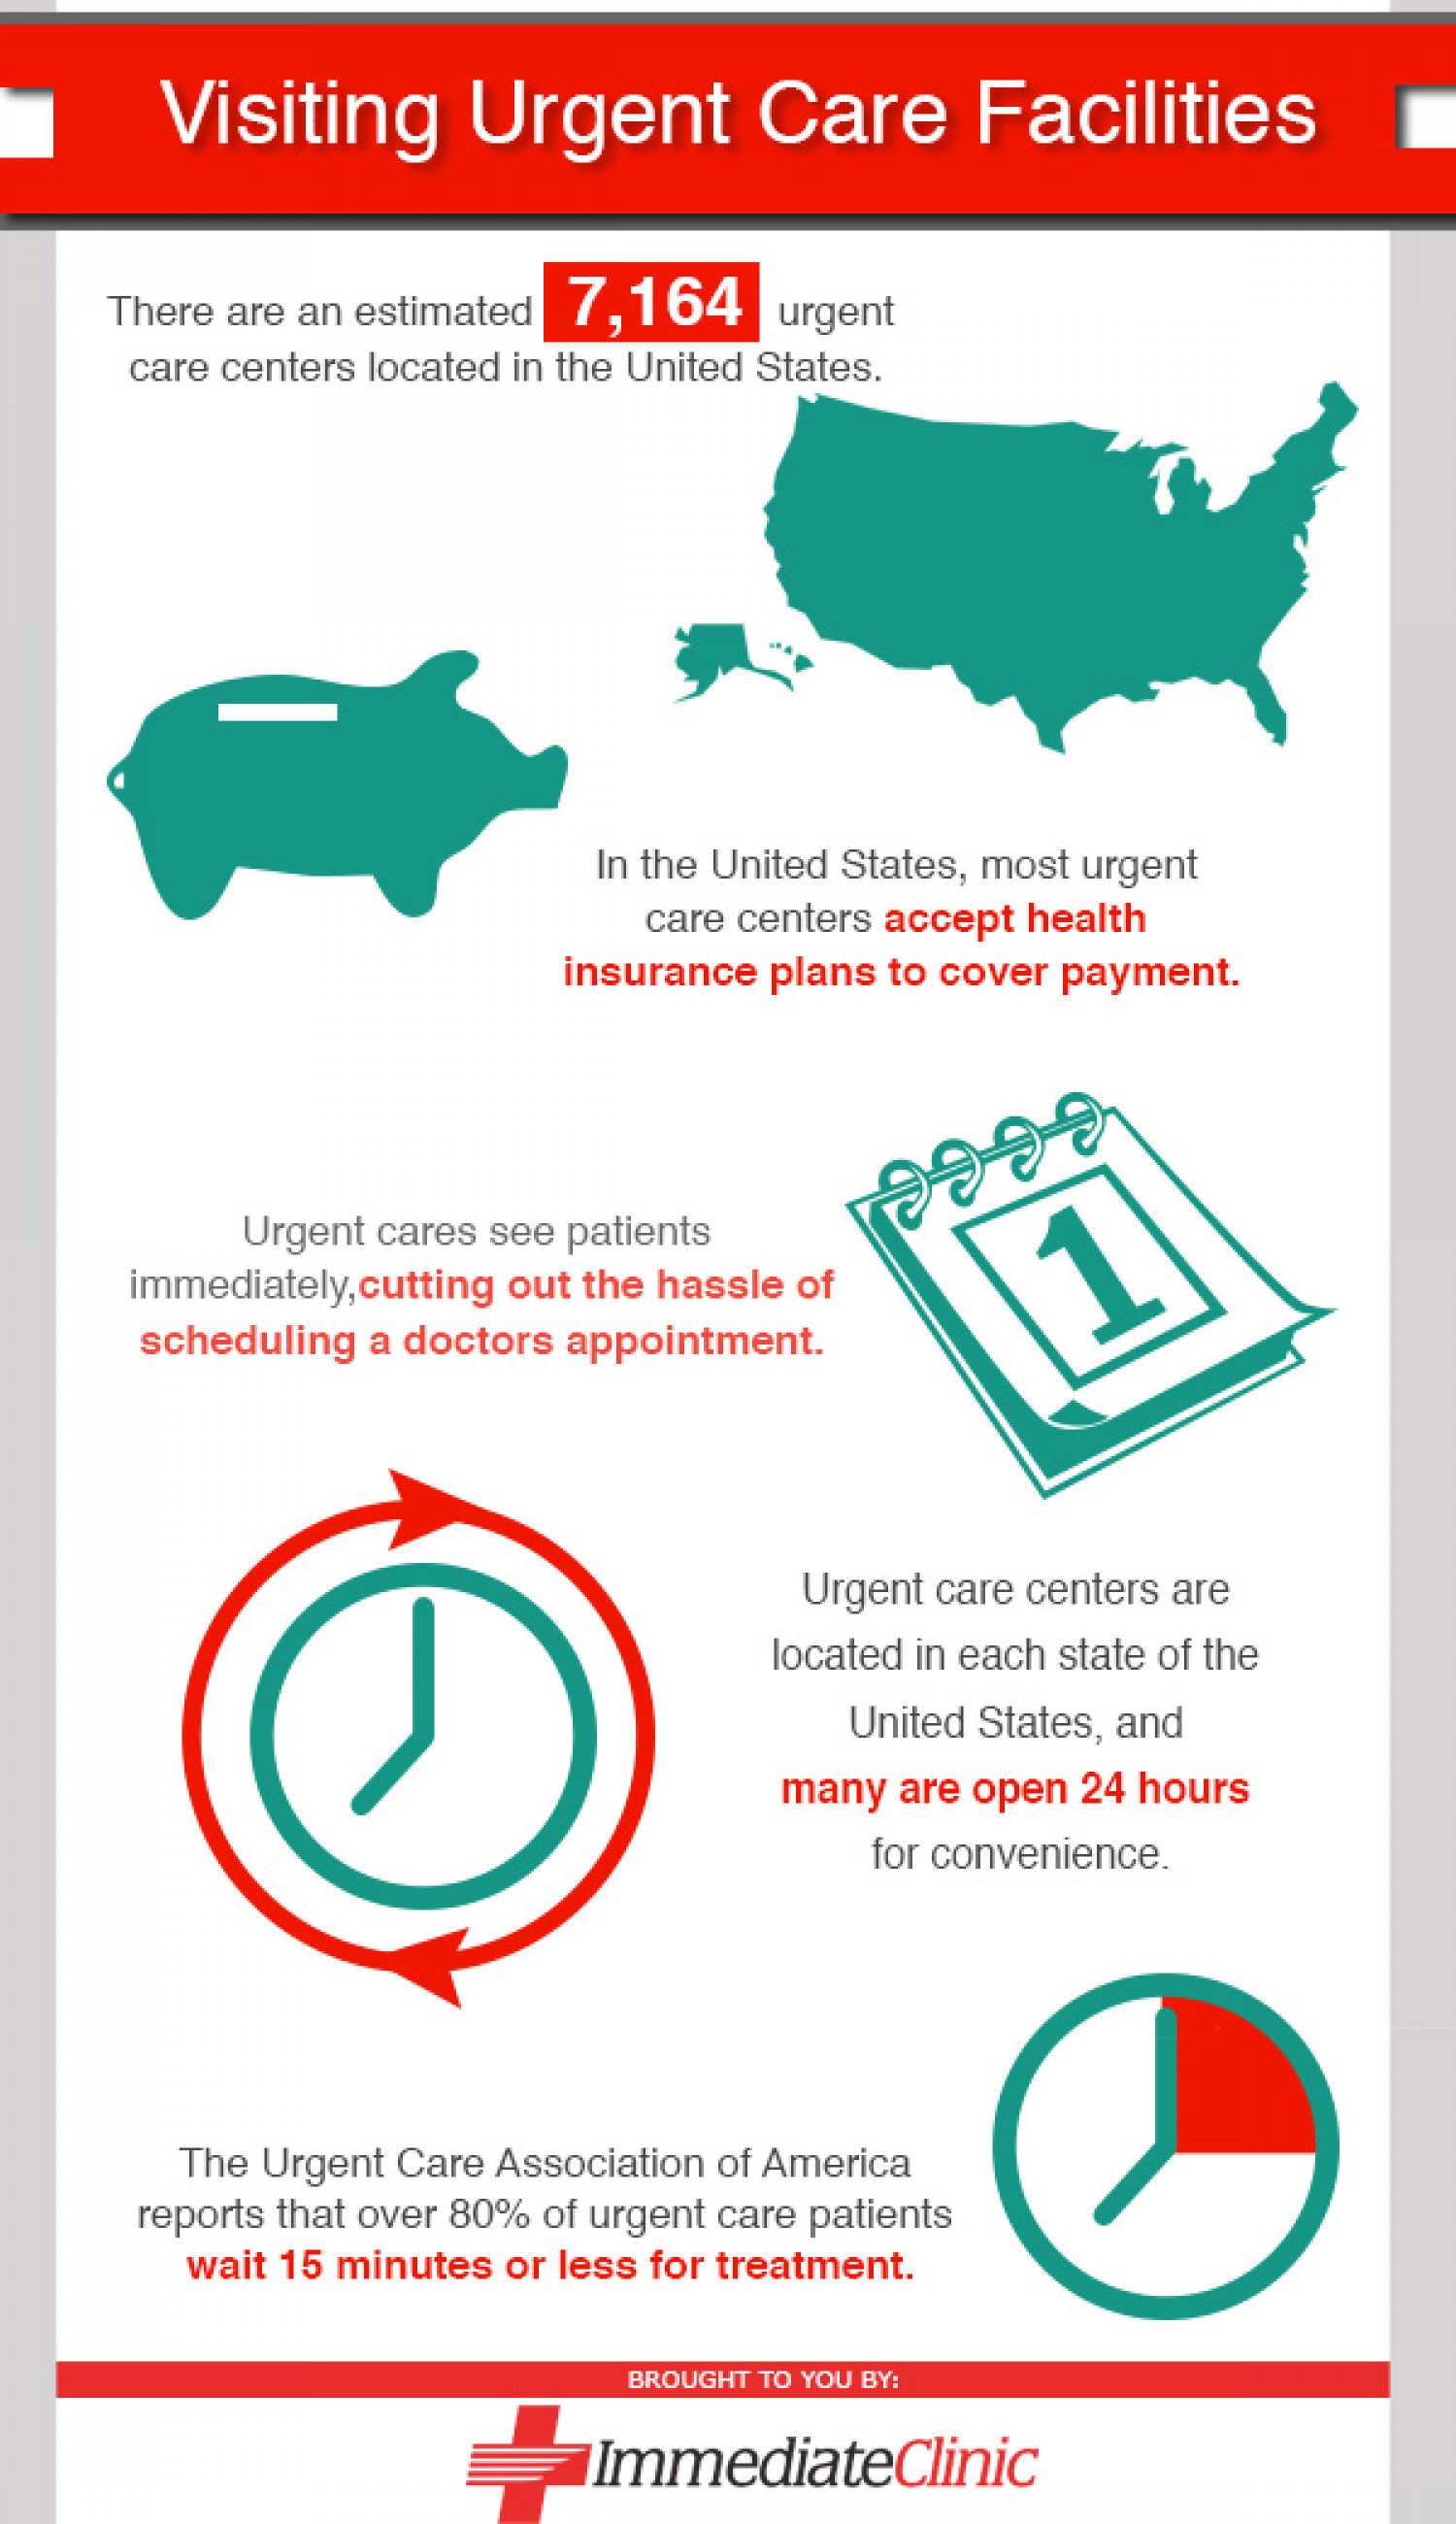 Visiting Urgent Care Facilities Infographic